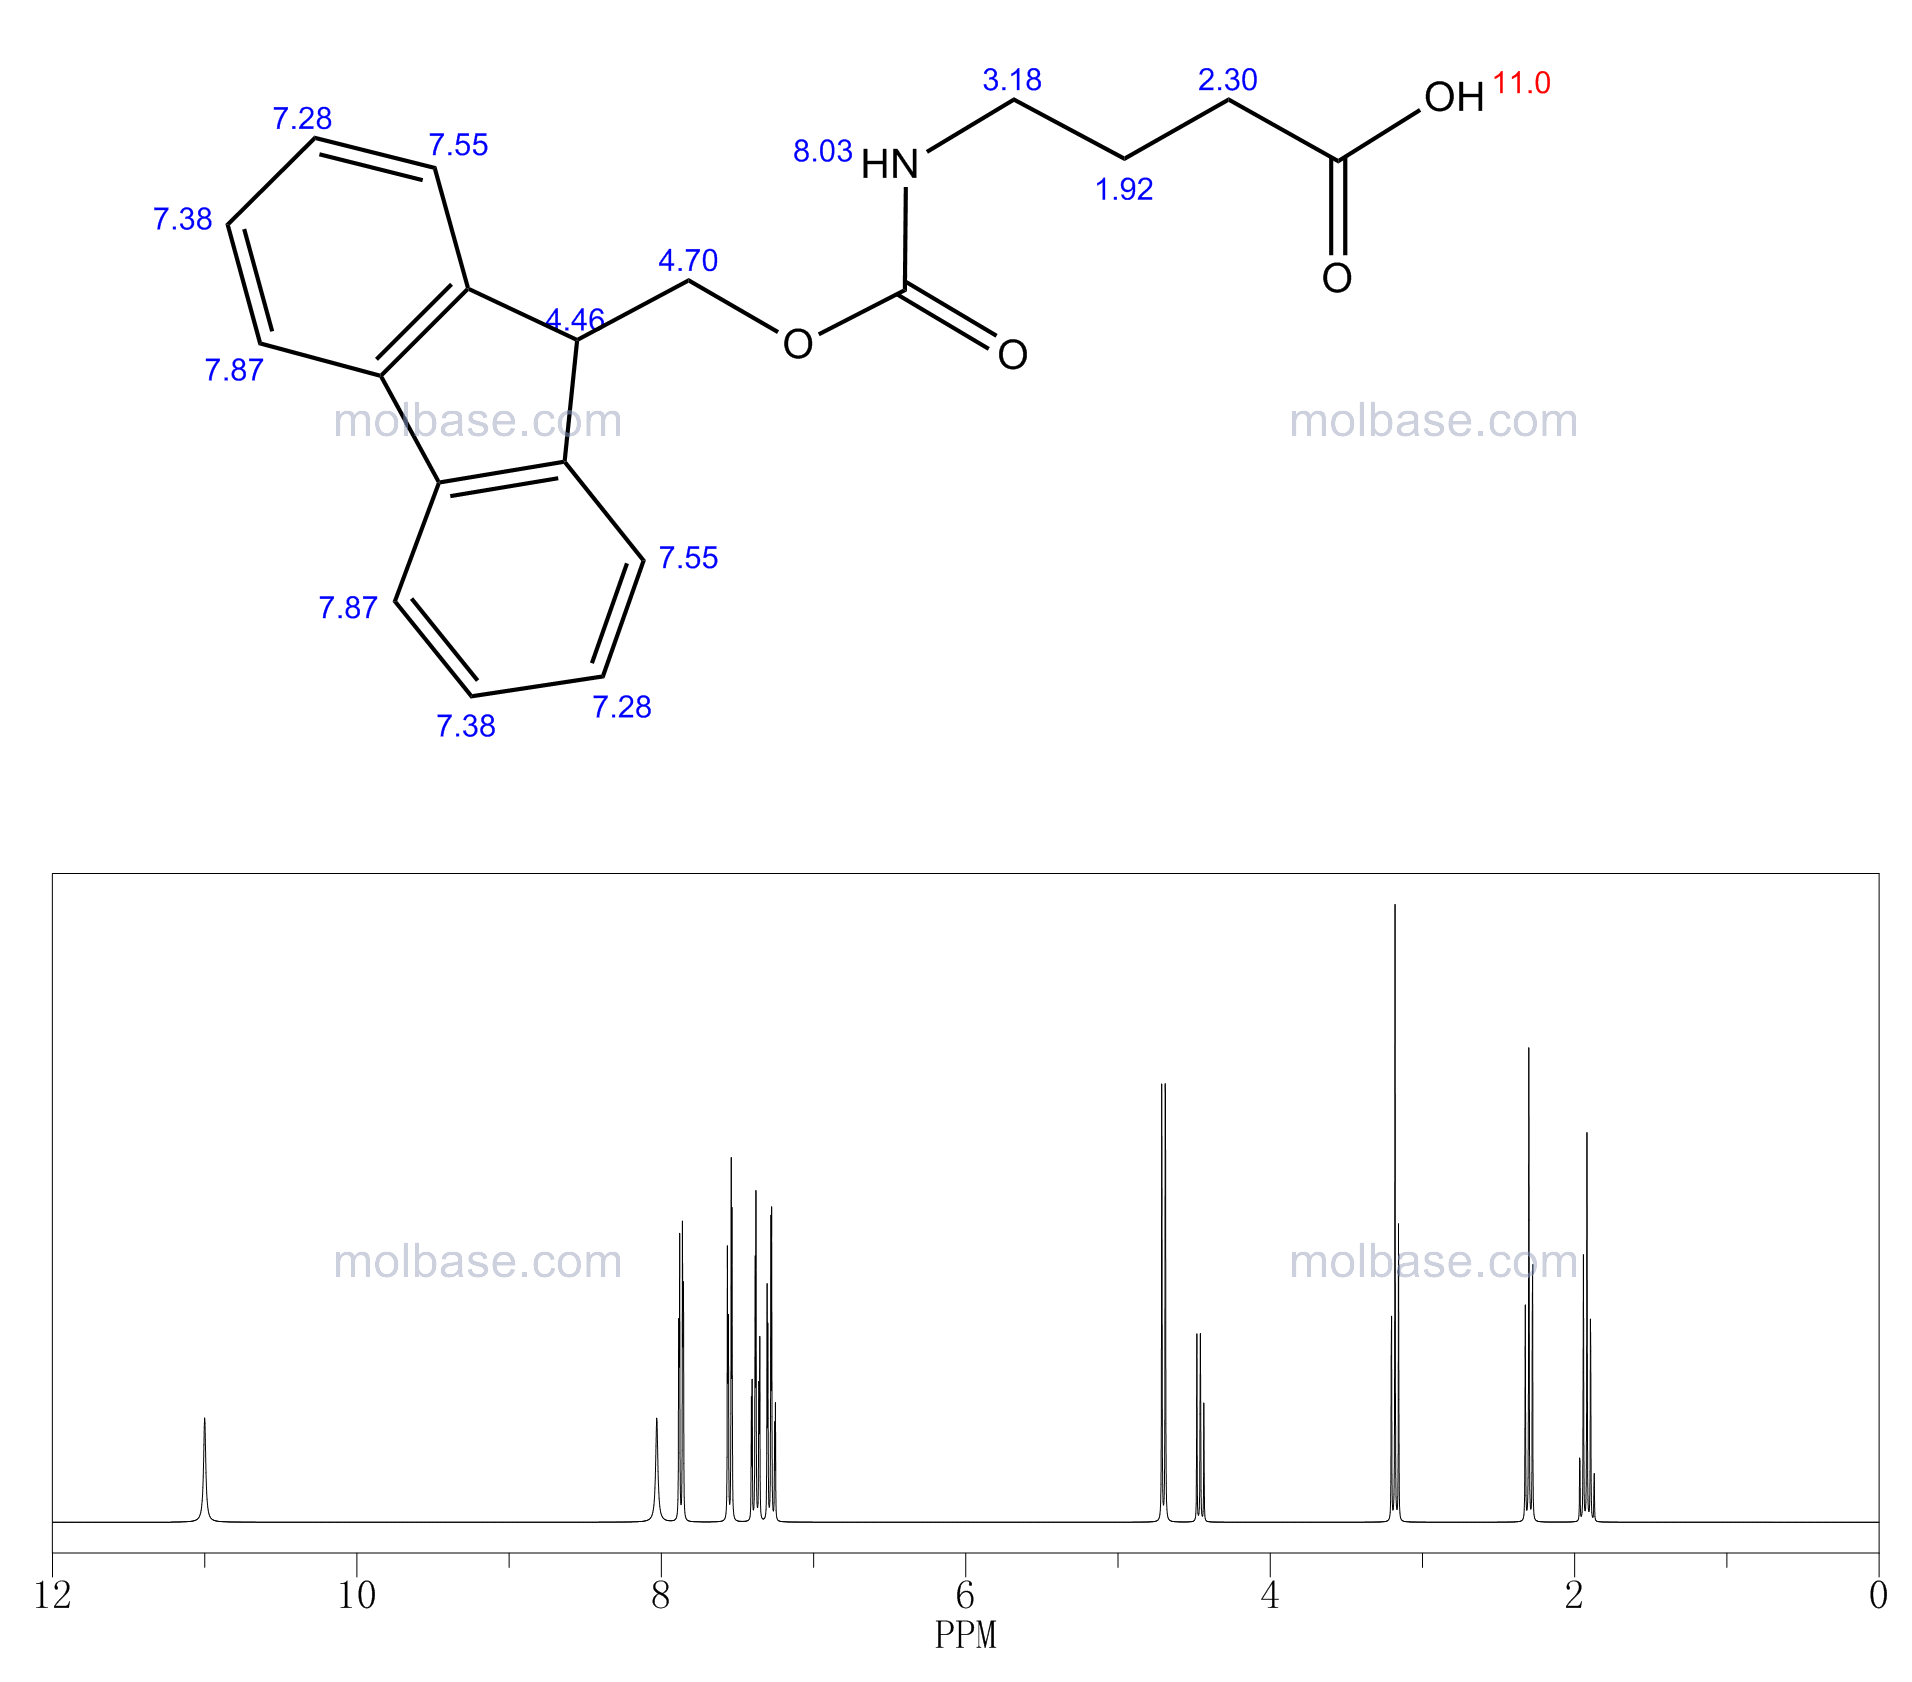 4-(9H-fluoren-9-ylmethoxycarbonylamino)butanoic acid NMR spectra analysis, Chemical CAS NO. 116821-47-7 NMR spectral analysis, 4-(9H-fluoren-9-ylmethoxycarbonylamino)butanoic acid C-NMR spectrum